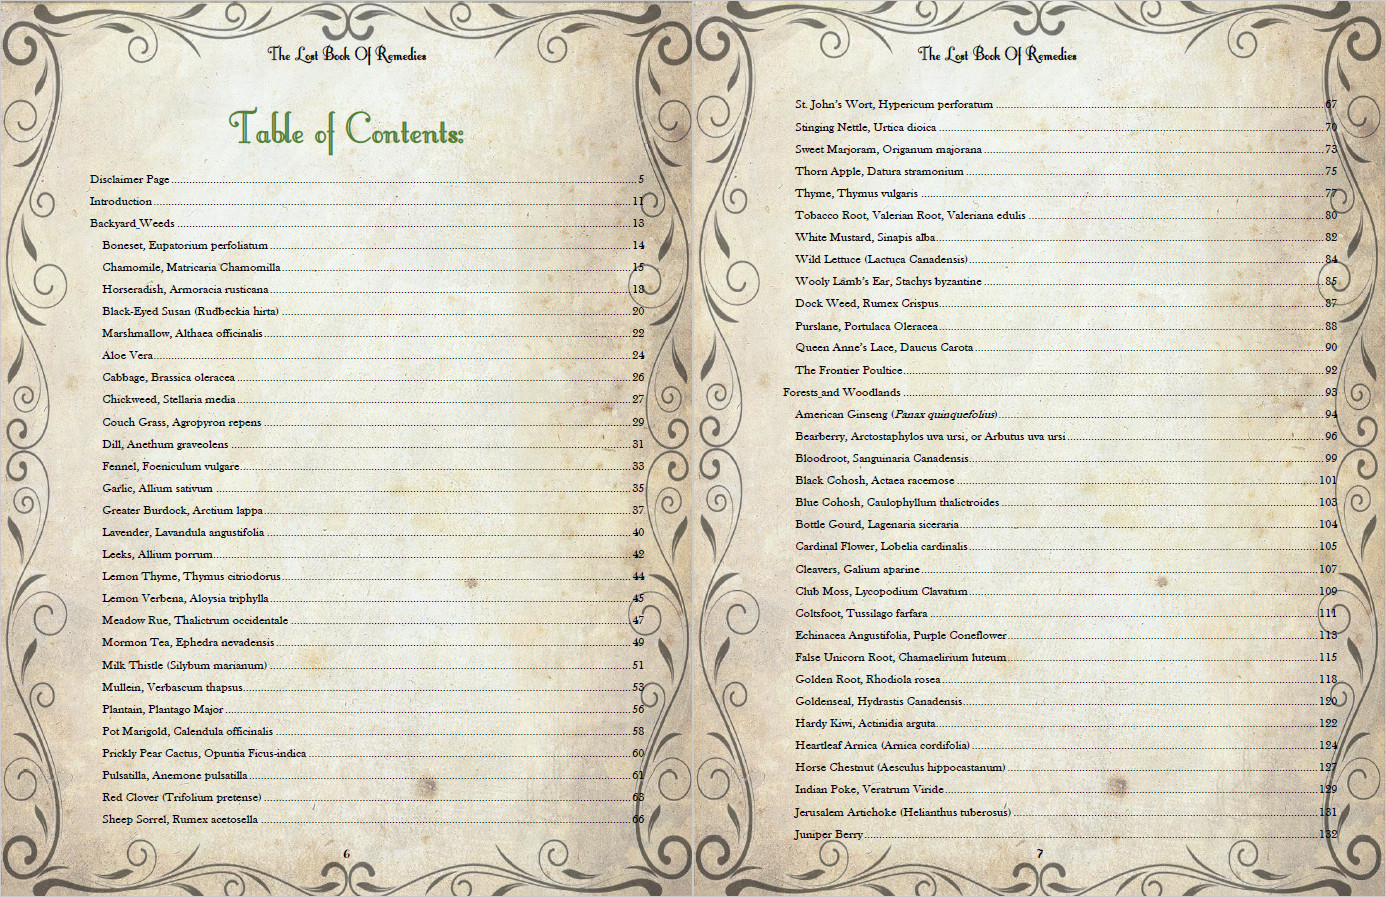 The Lost Book of Remedies' Table of Contents